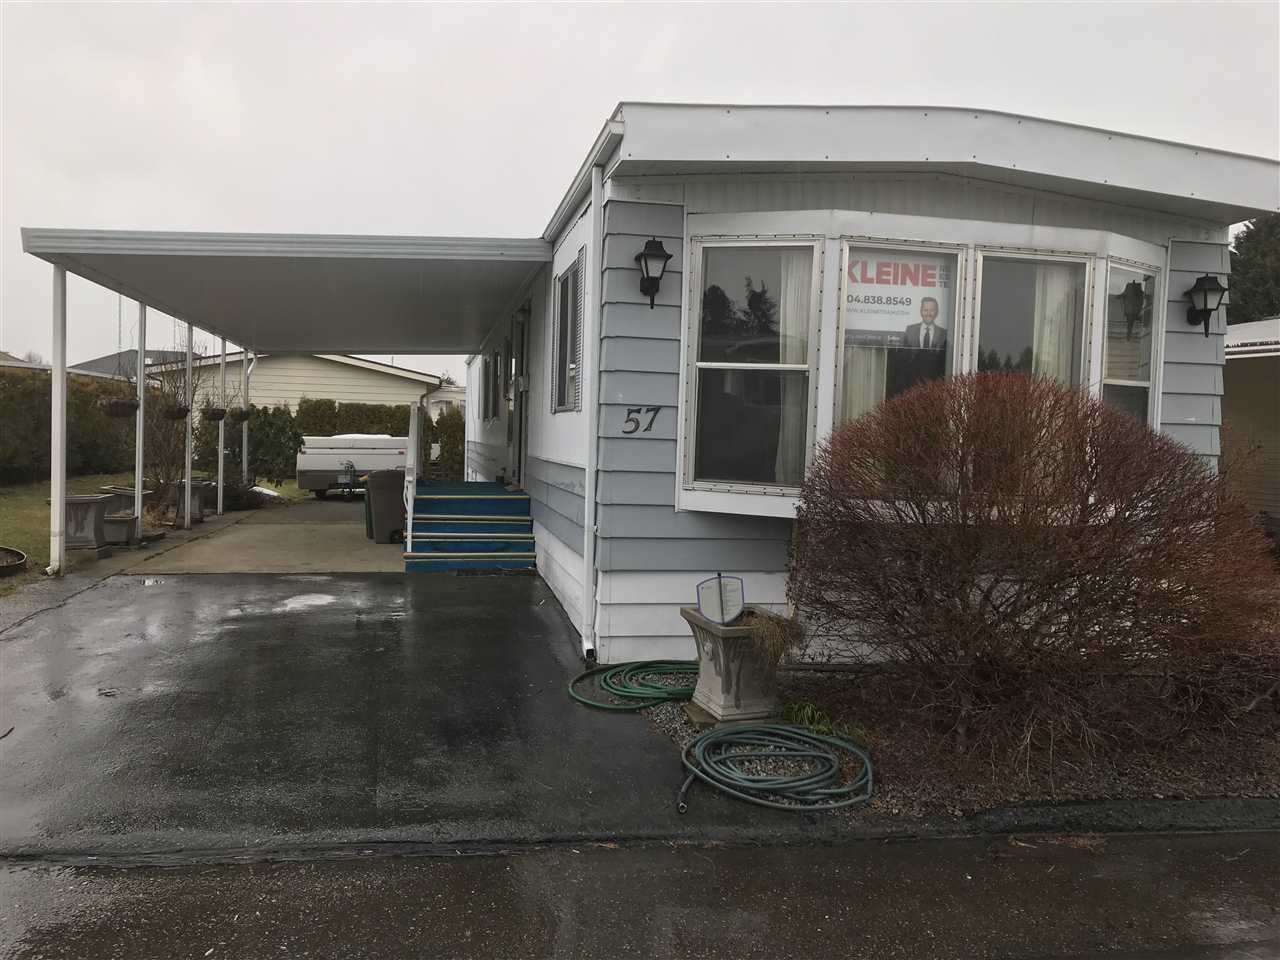 """Main Photo: 57 8254 134 Street in Surrey: Queen Mary Park Surrey Manufactured Home for sale in """"WESTWOOD ESTATES"""" : MLS®# R2344334"""